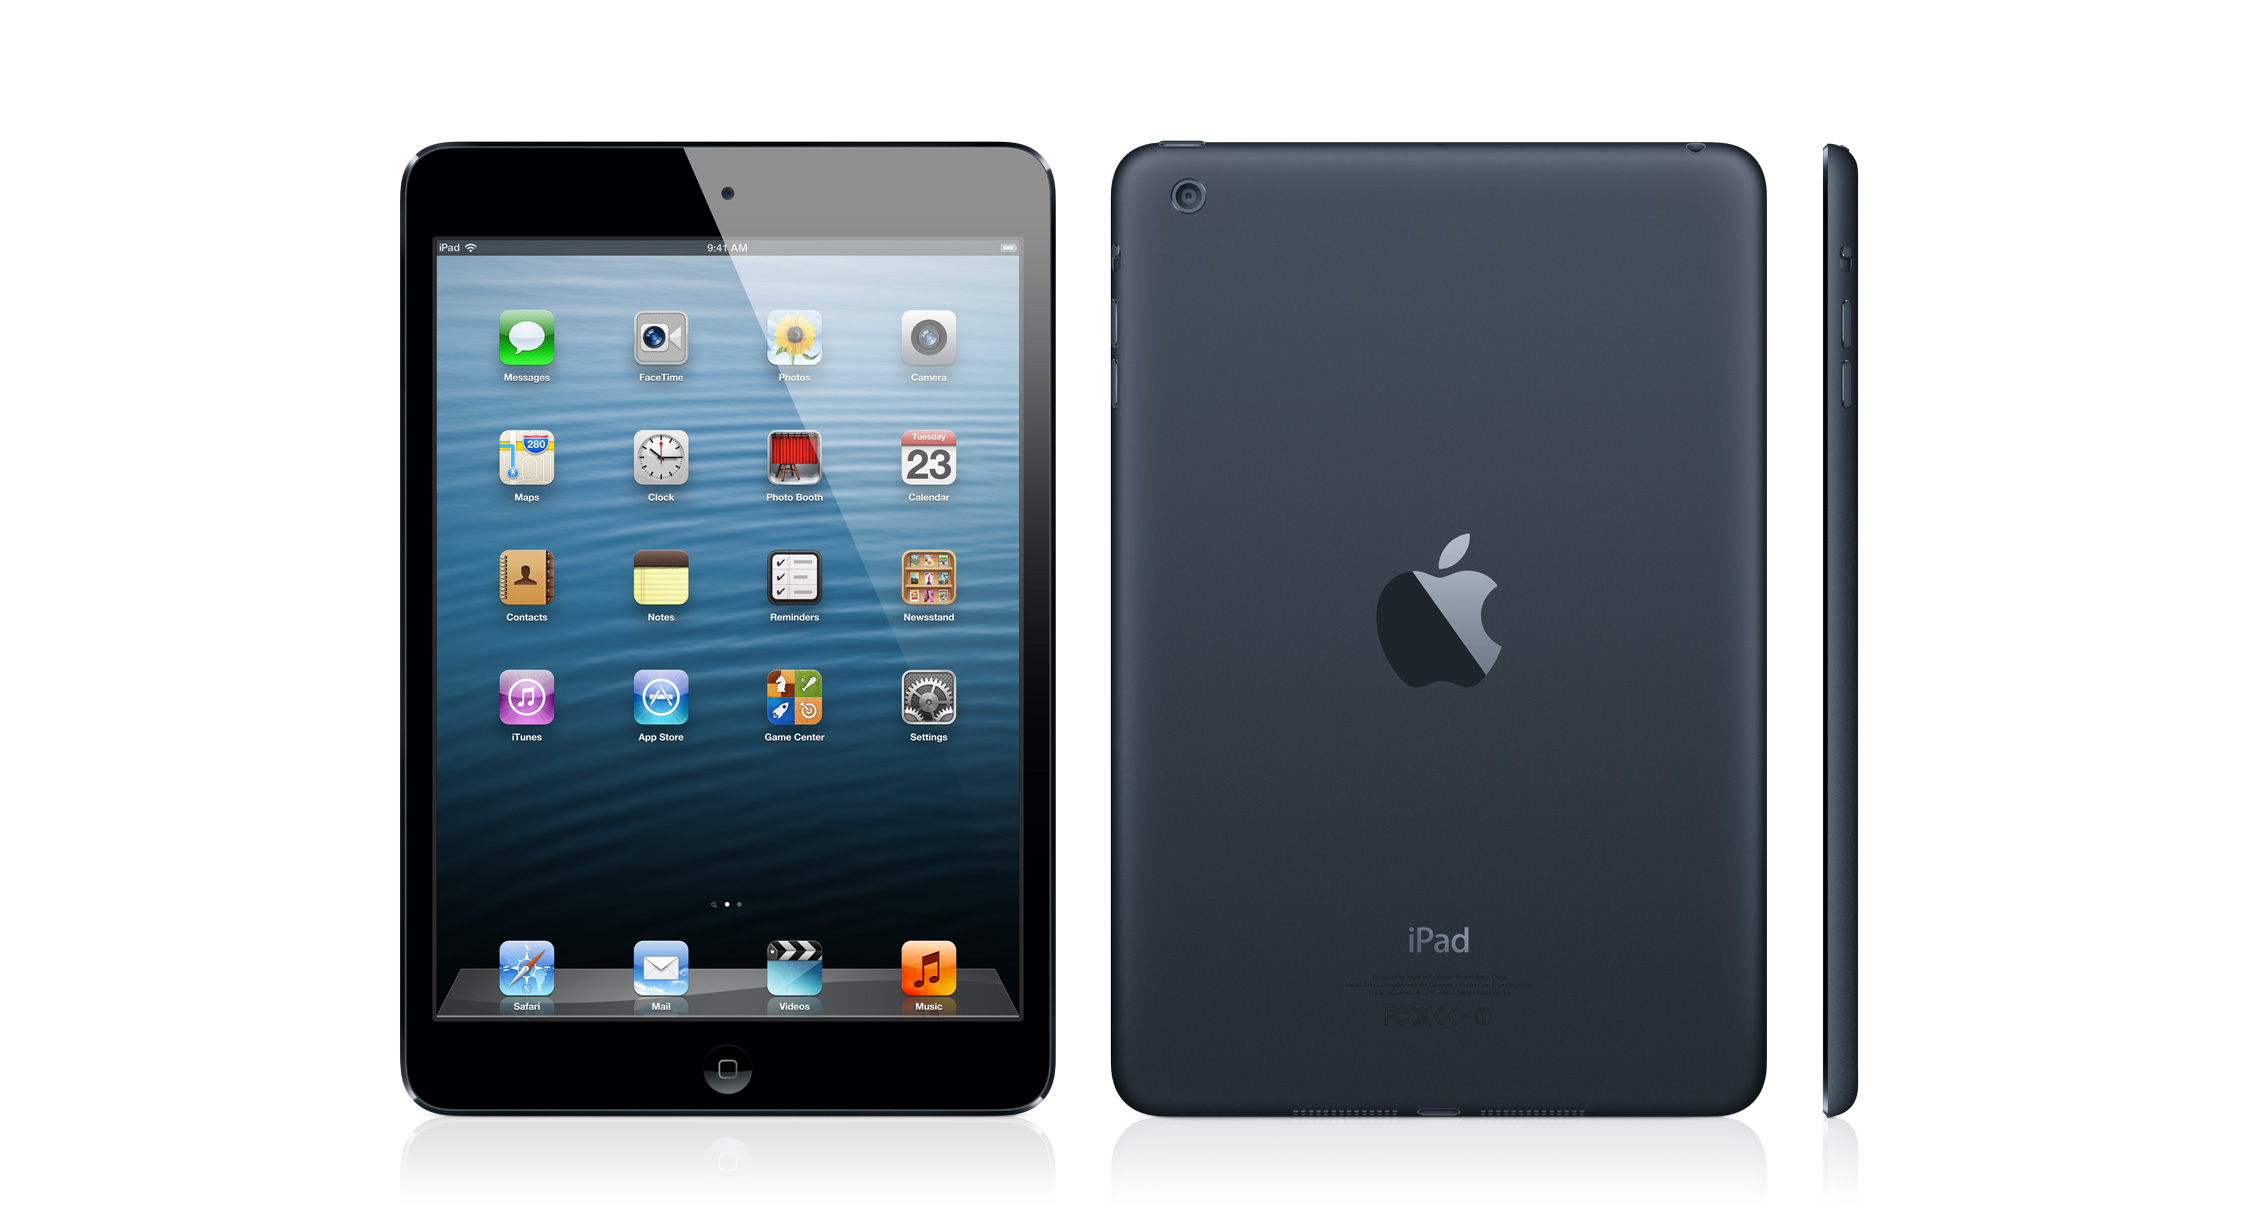 Apple iPad Mini Wi Fi A1432 64GB  Apple iPad 2 5  Specs